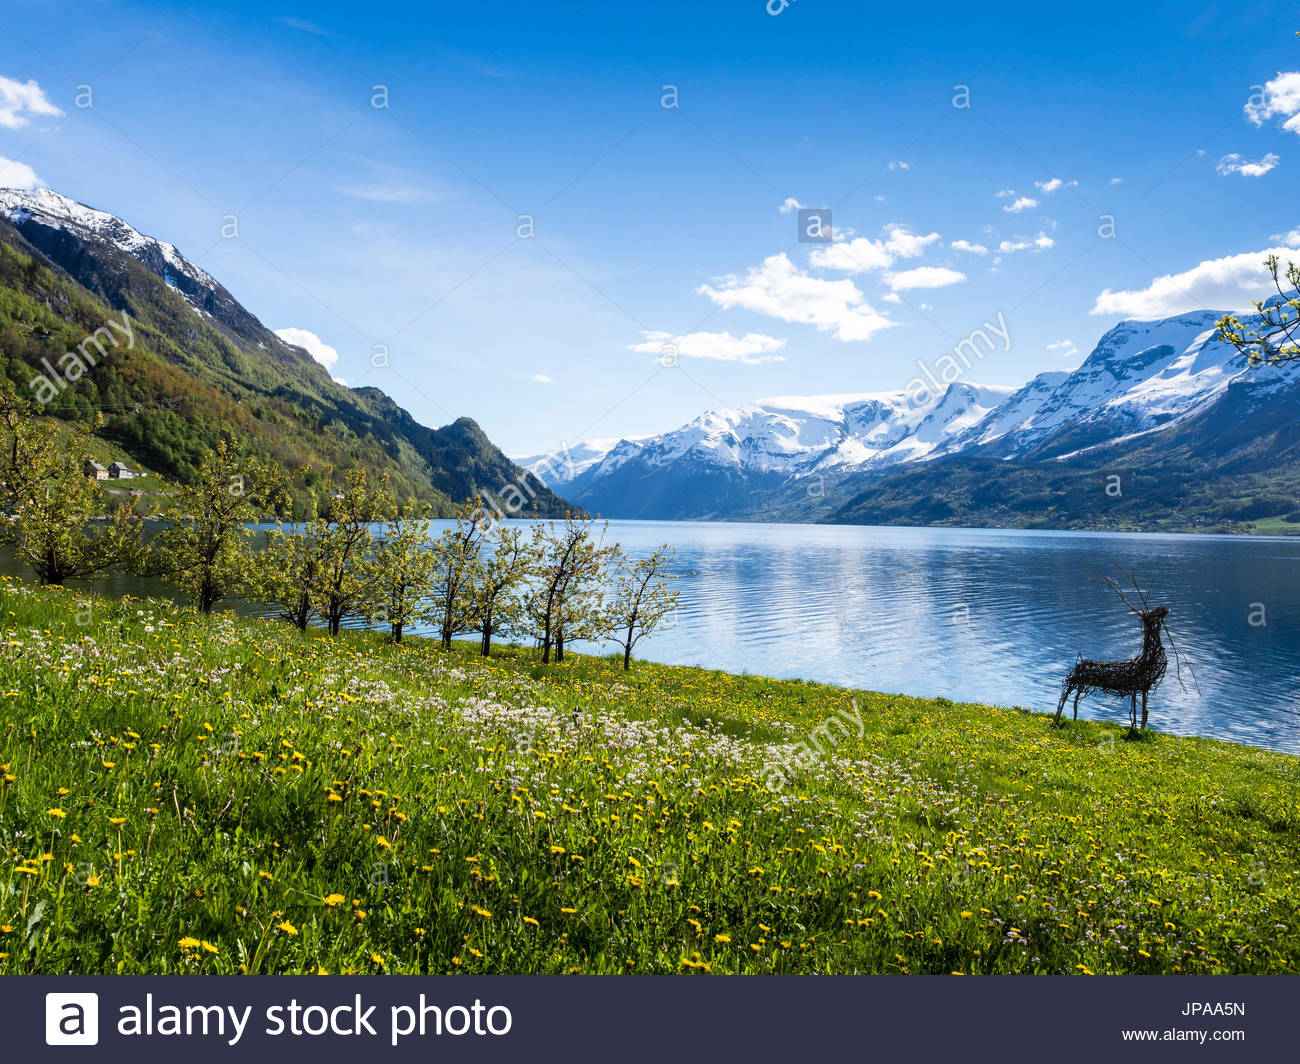 View of snow-covered mountains, fjord and apple trees in bloom, spring, Hardangerfjord near Lofthus, Hardanger, - Stock Image